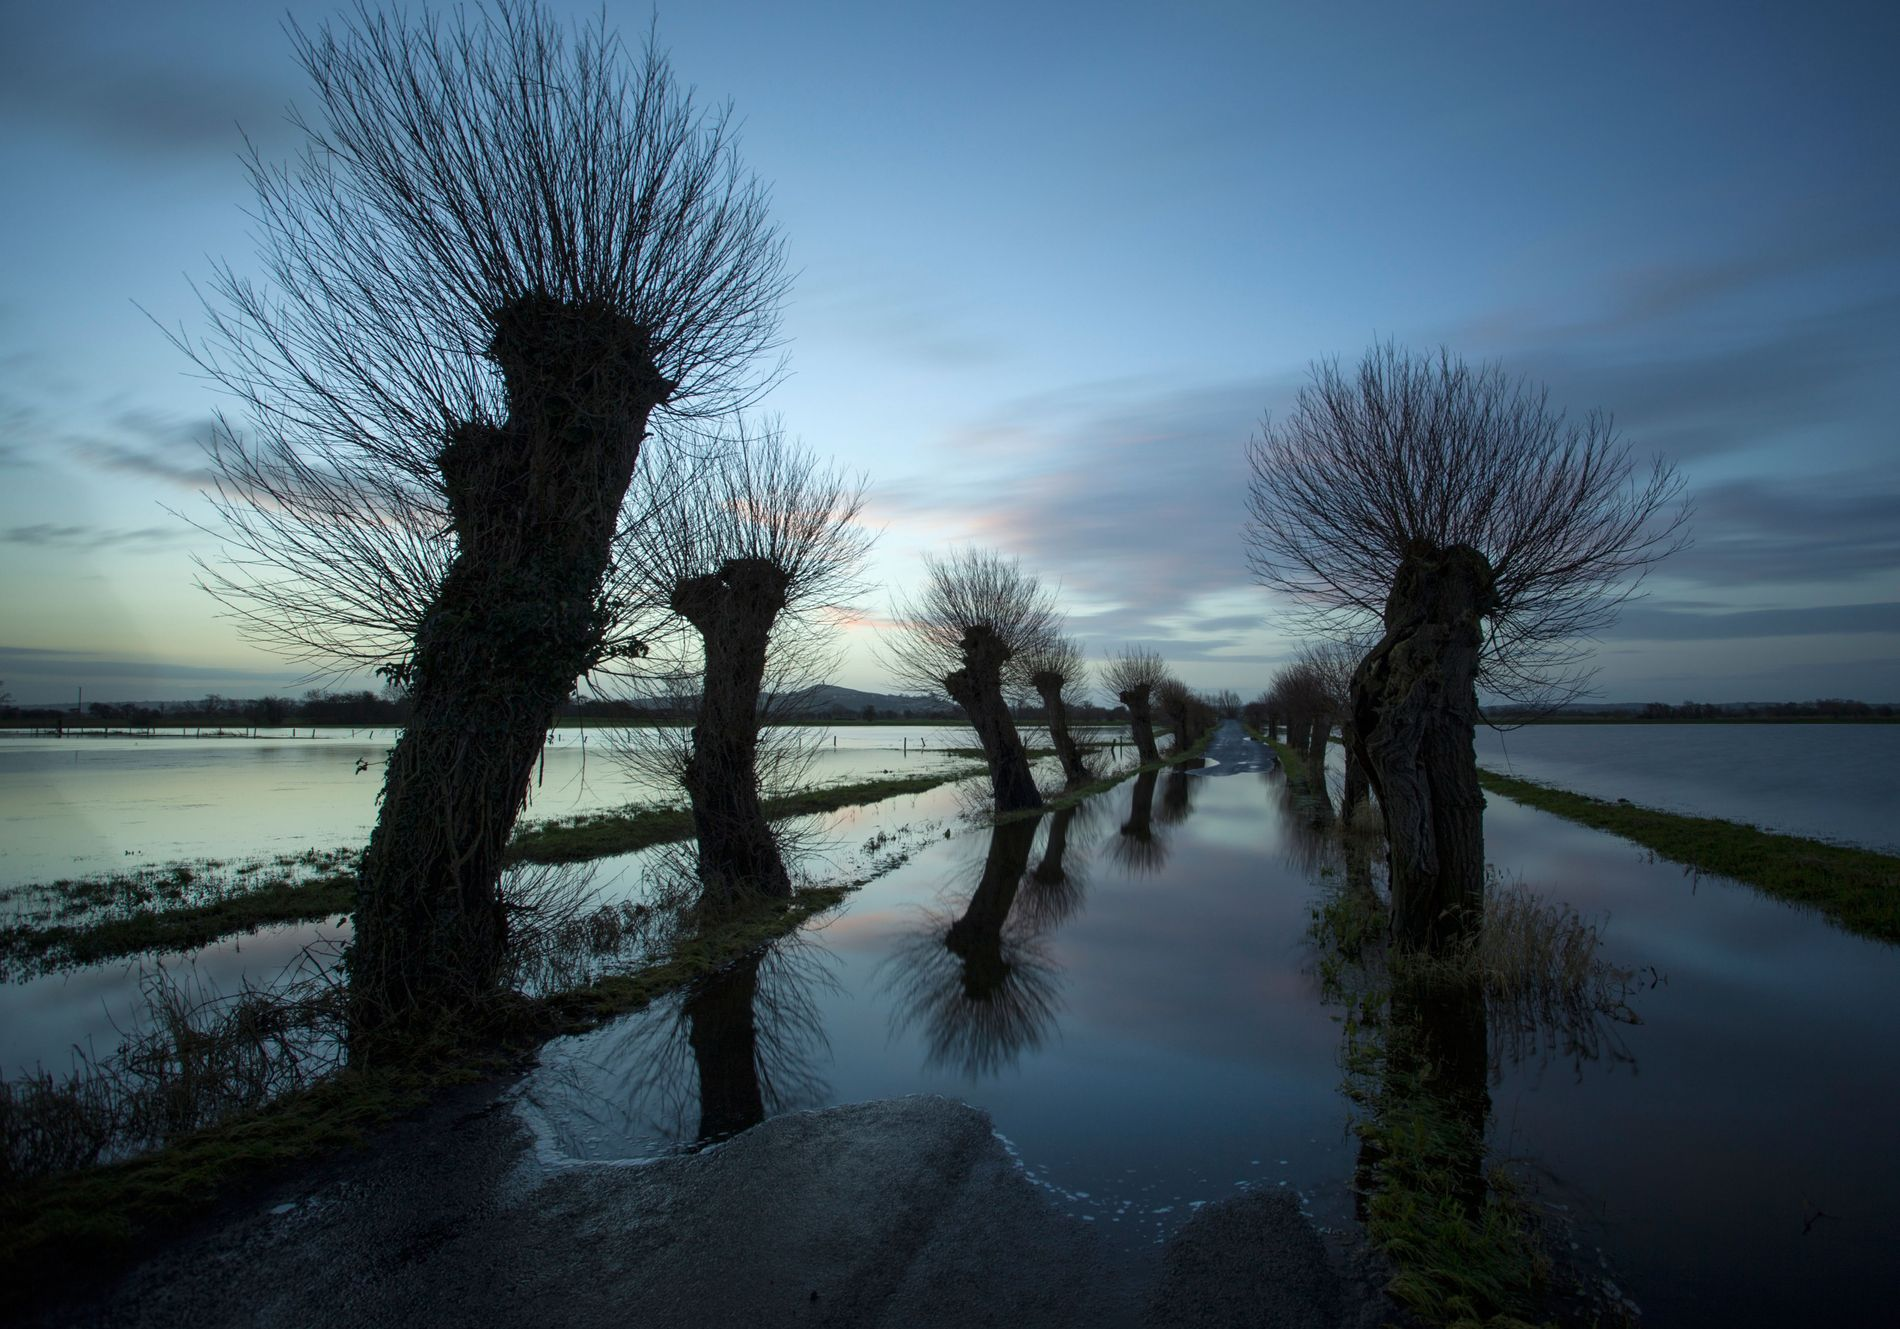 Willow trees at Godney near Glastonbury, with the Levels in flood. The tor is visible beyond.